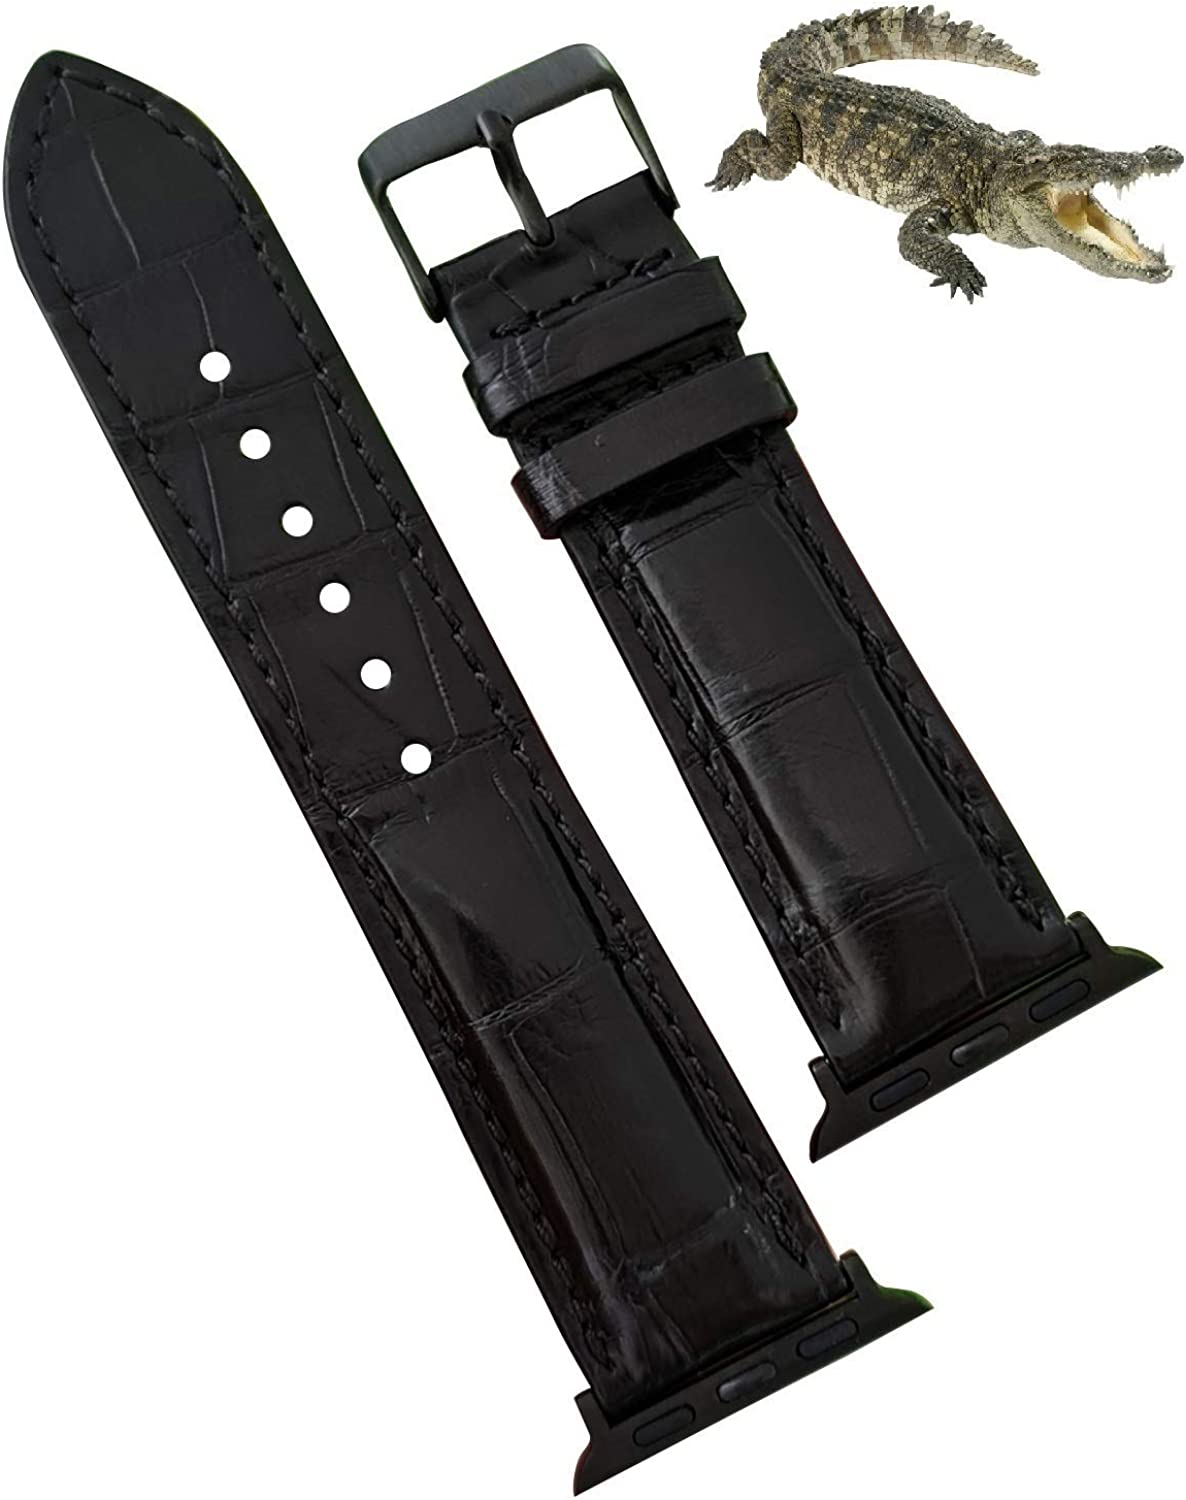 Handmade Alligator Belly Band Compatible with Apple Watch Crocodile Strap Iwatch Smart 38mm 40mm 42mm 44mm Series 6 5 4 3 2 Handmade By Vietnamese